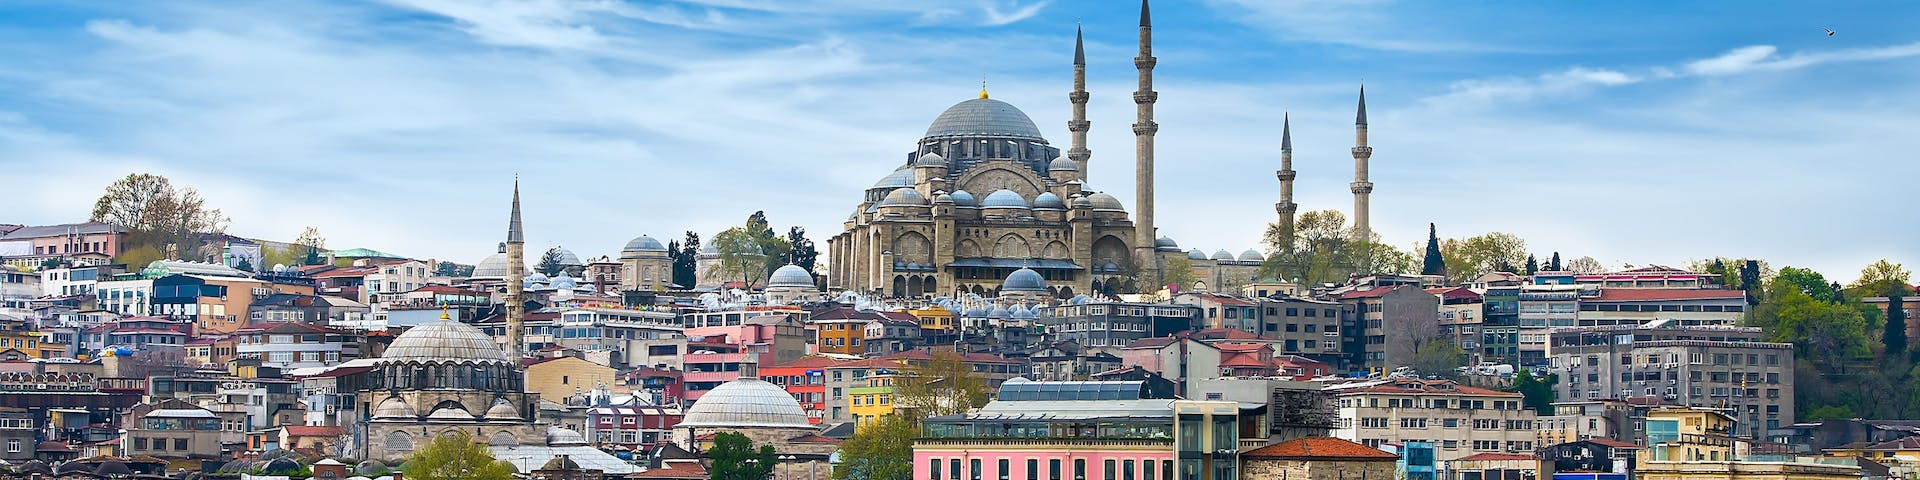 How to Apply to a University in Turkey in 2019